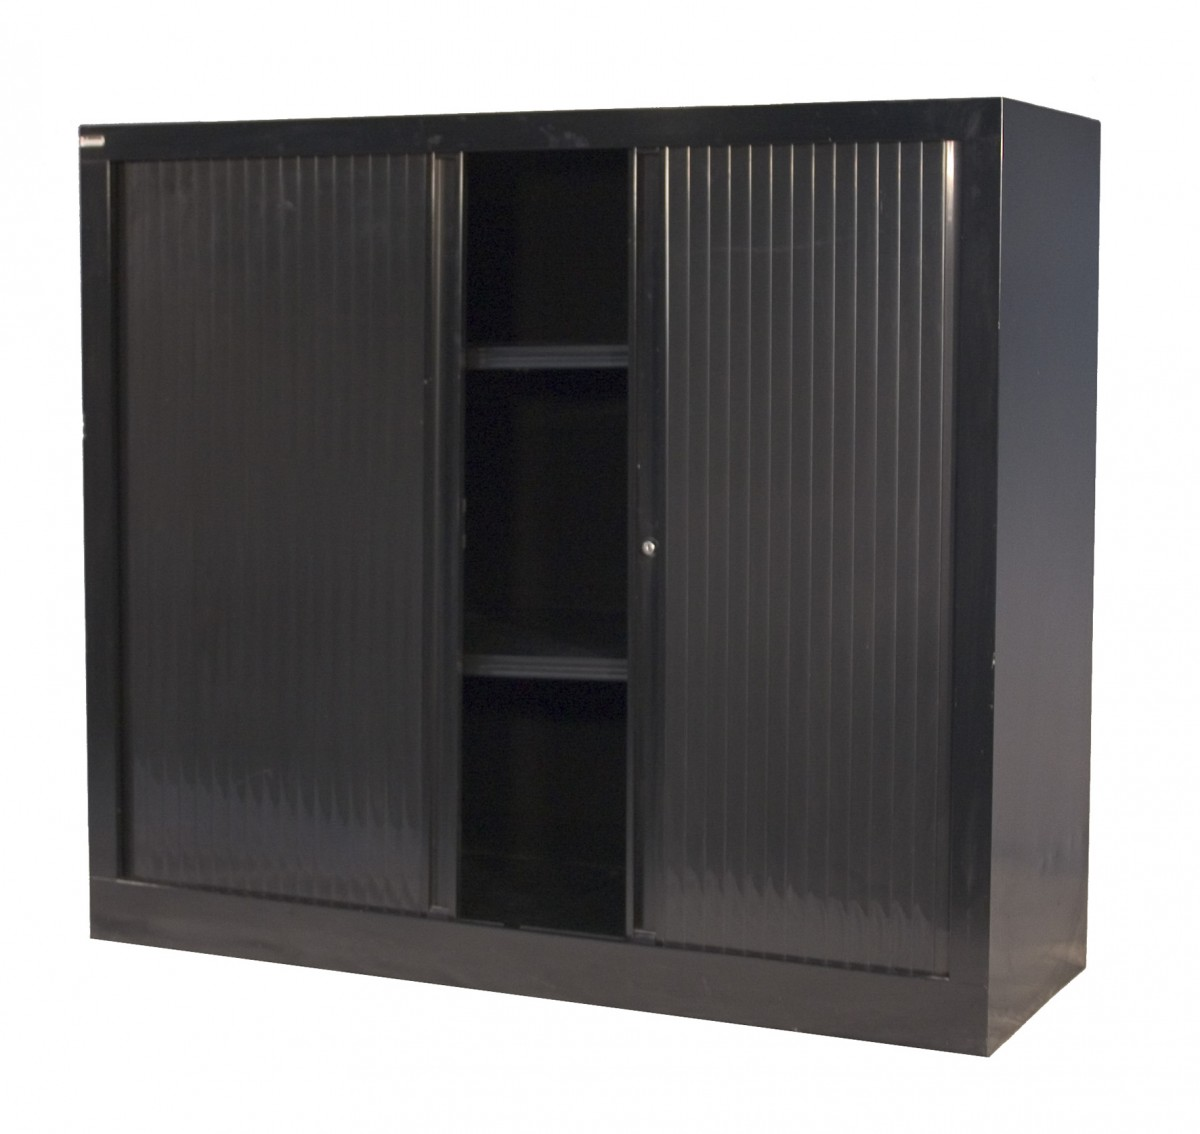 armoire demi rideau mobilier location. Black Bedroom Furniture Sets. Home Design Ideas